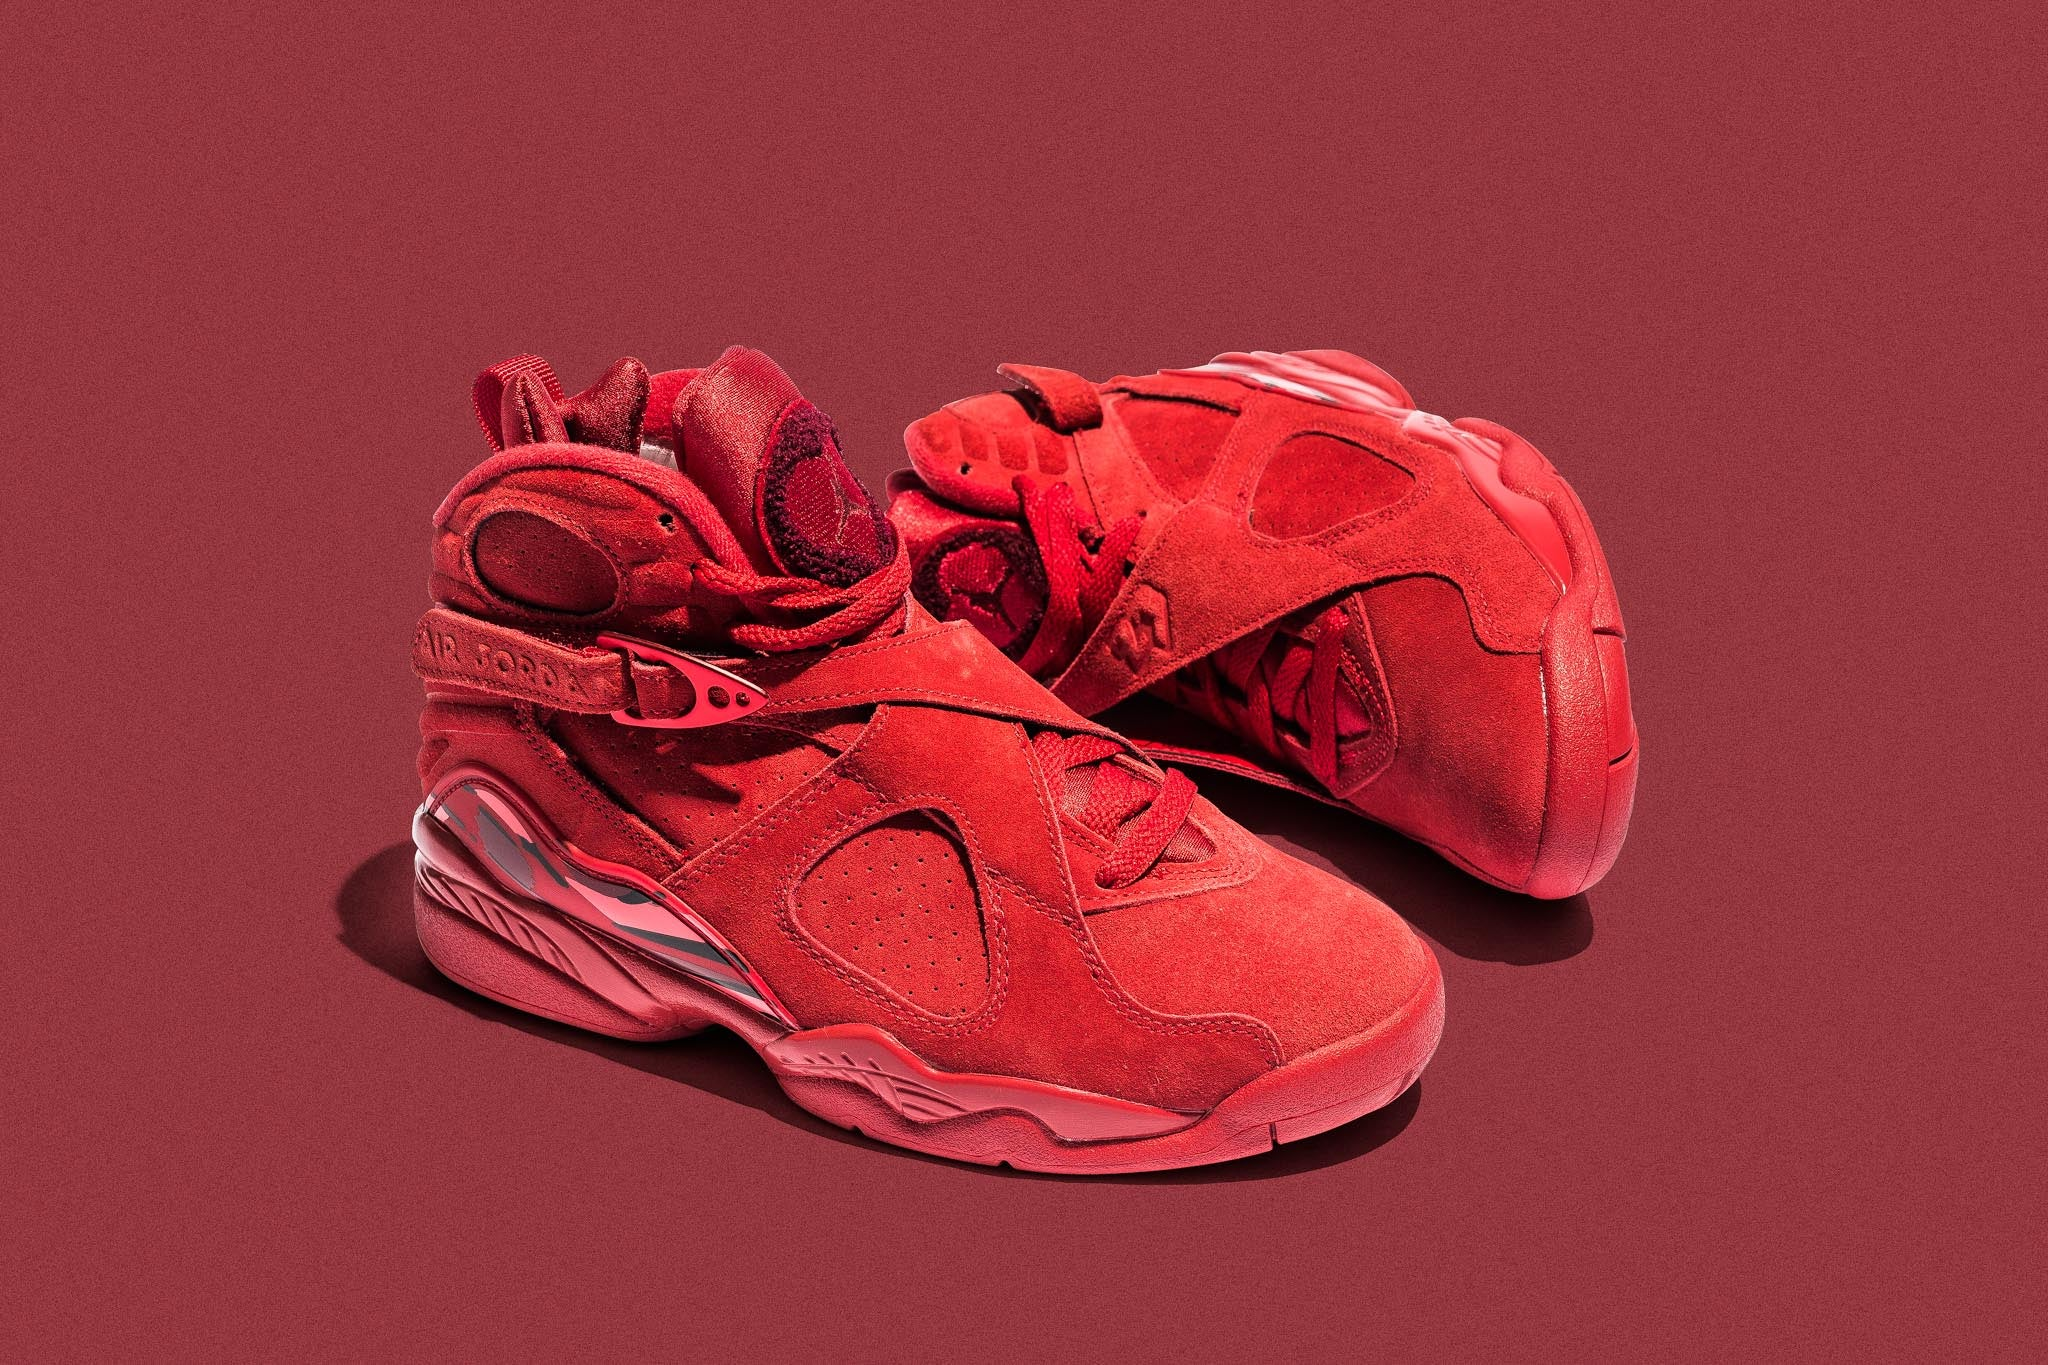 finest selection a7f3b e506a Air Jordan 8 Valentines Day 02.09.18 – Capsule Online